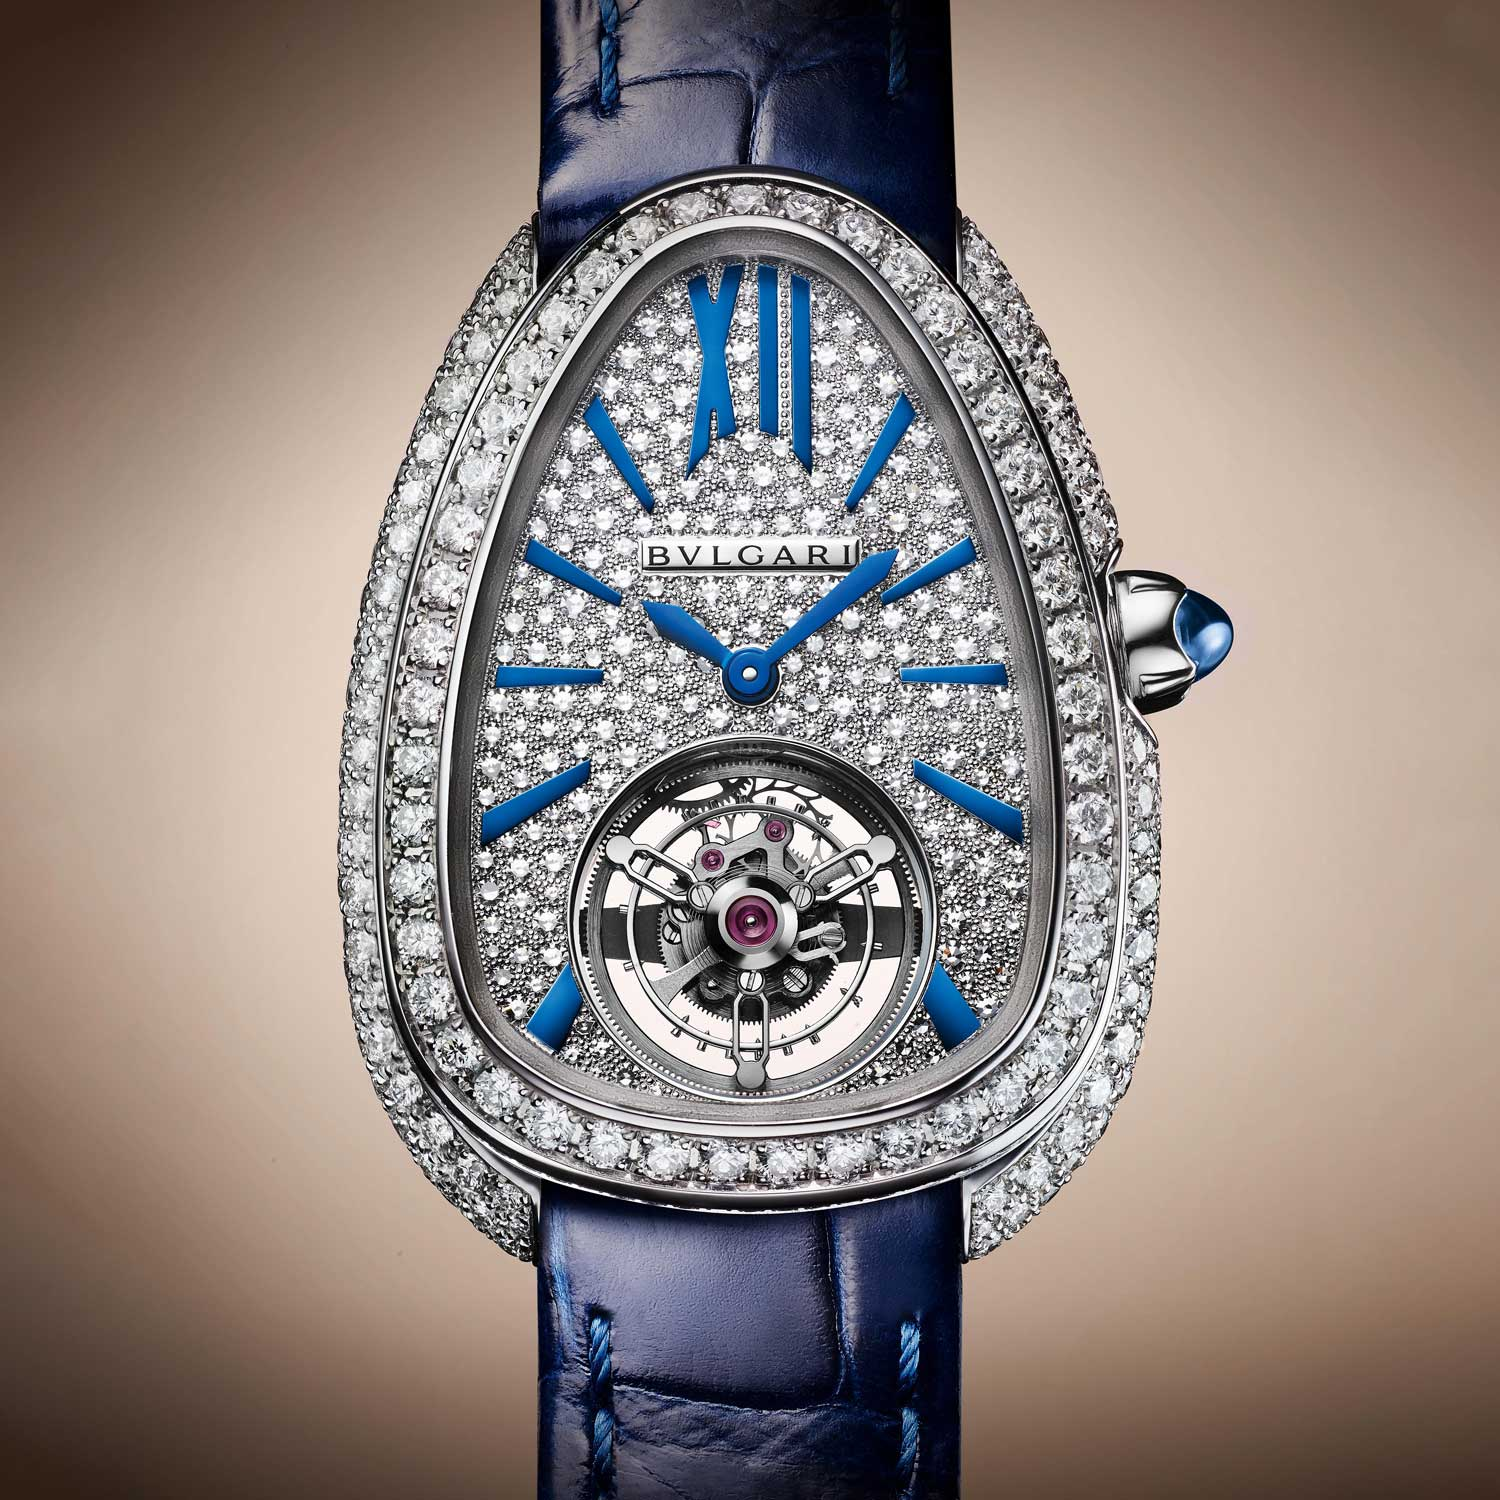 Serpenti Seduttori Tourbillon